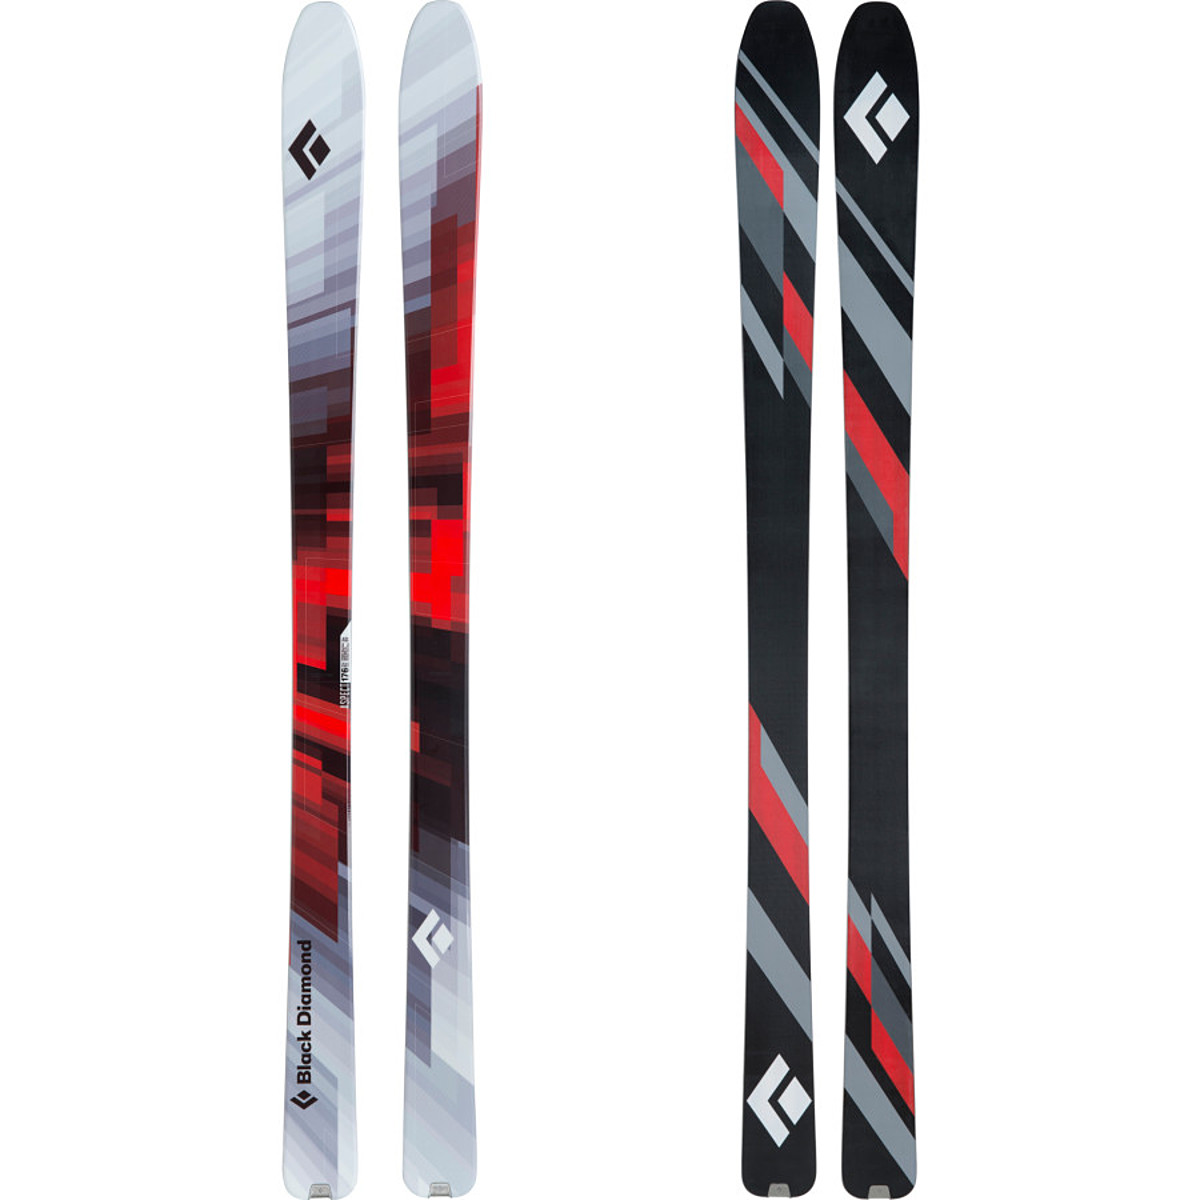 Black Diamond Aspect Ski